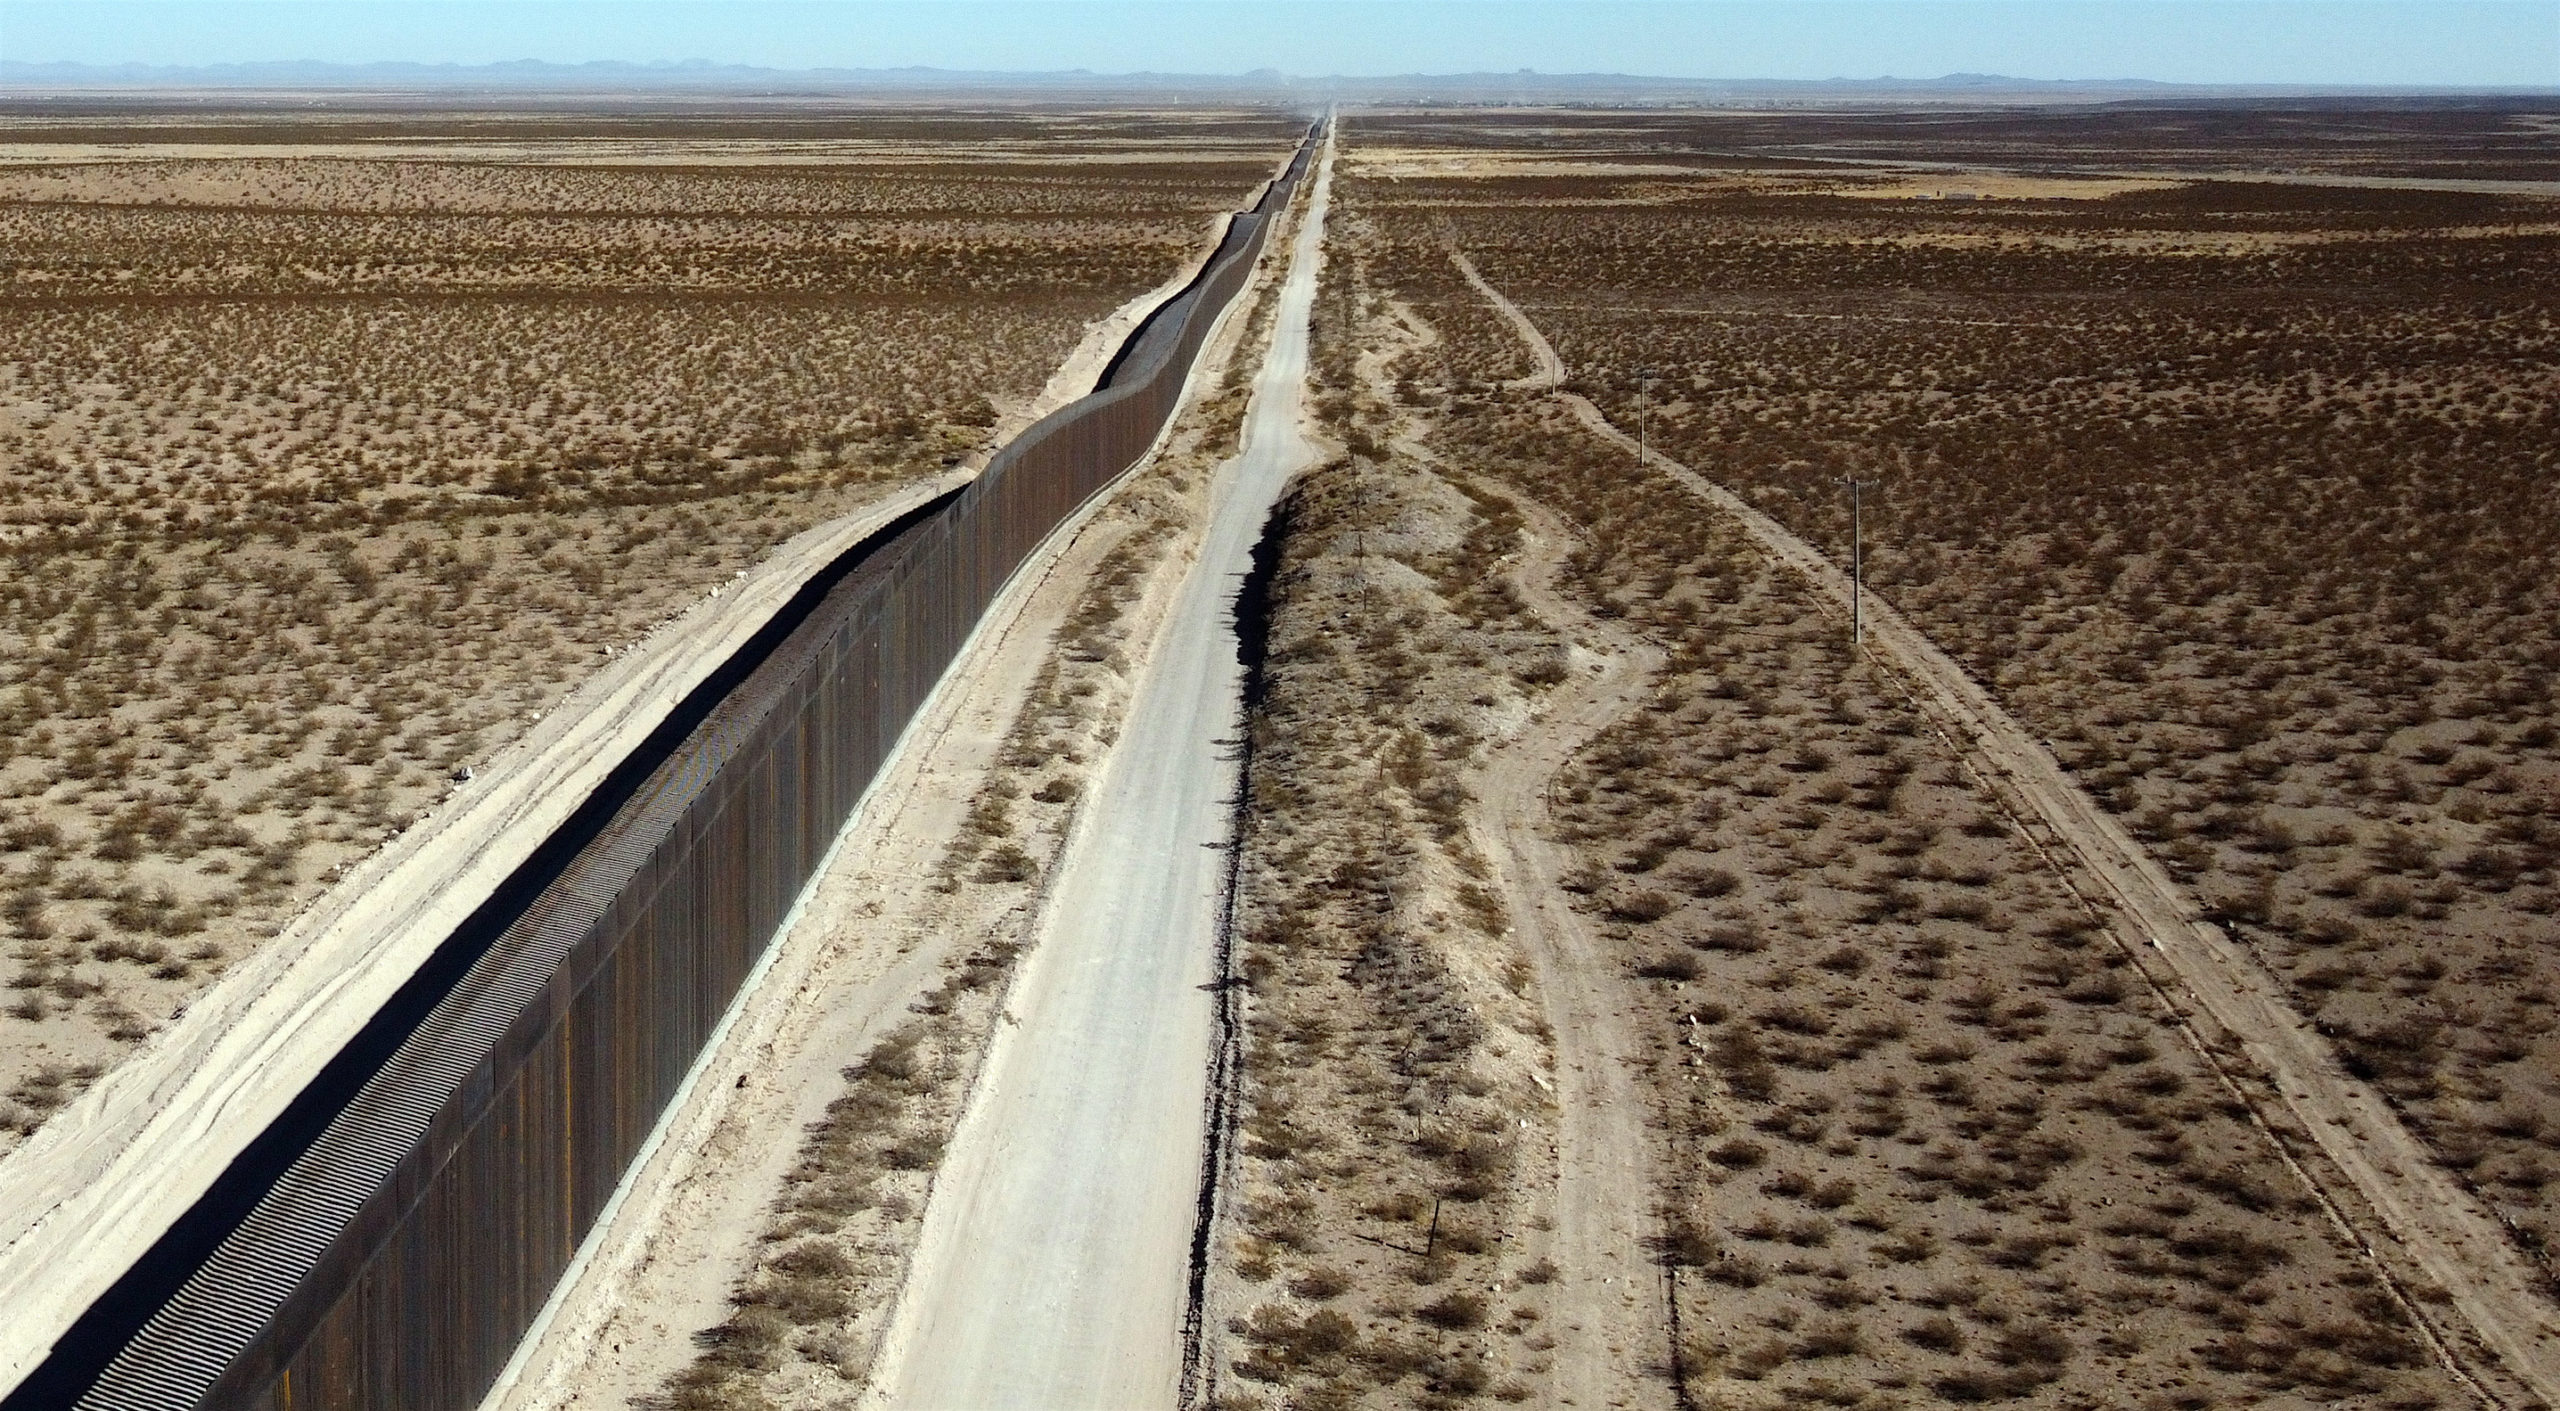 Picture of the wall lifted by a US company on the border between Columbus, state of New Mexico, United States, and Puerto Palomas de Villa, municipality of Ascension, State of Chihuahua, Mexico (R), taken on November 30, 2020. - Weeks before Donald Trump is due to leave office, workers are racing to build the hulking steel fence along the US-Mexican border that was a centerpiece of his presidency. (Photo by Herika MARTINEZ / AFP) (Photo by HERIKA MARTINEZ/AFP via Getty Images)